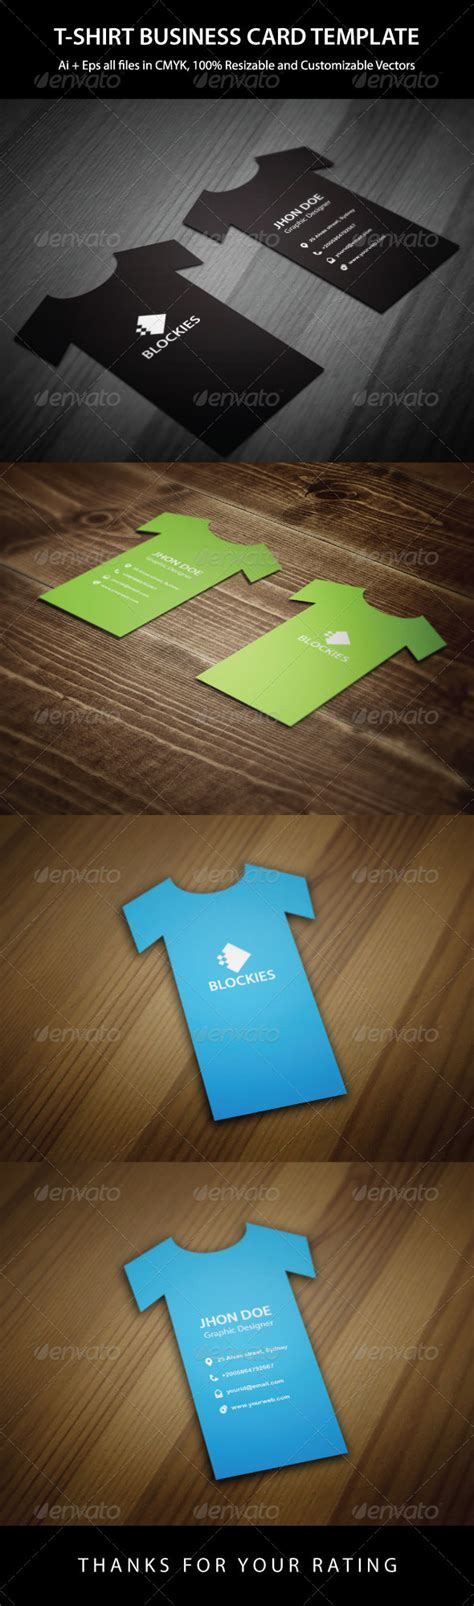 at t business card template t shirt business card template by kazierfan graphicriver